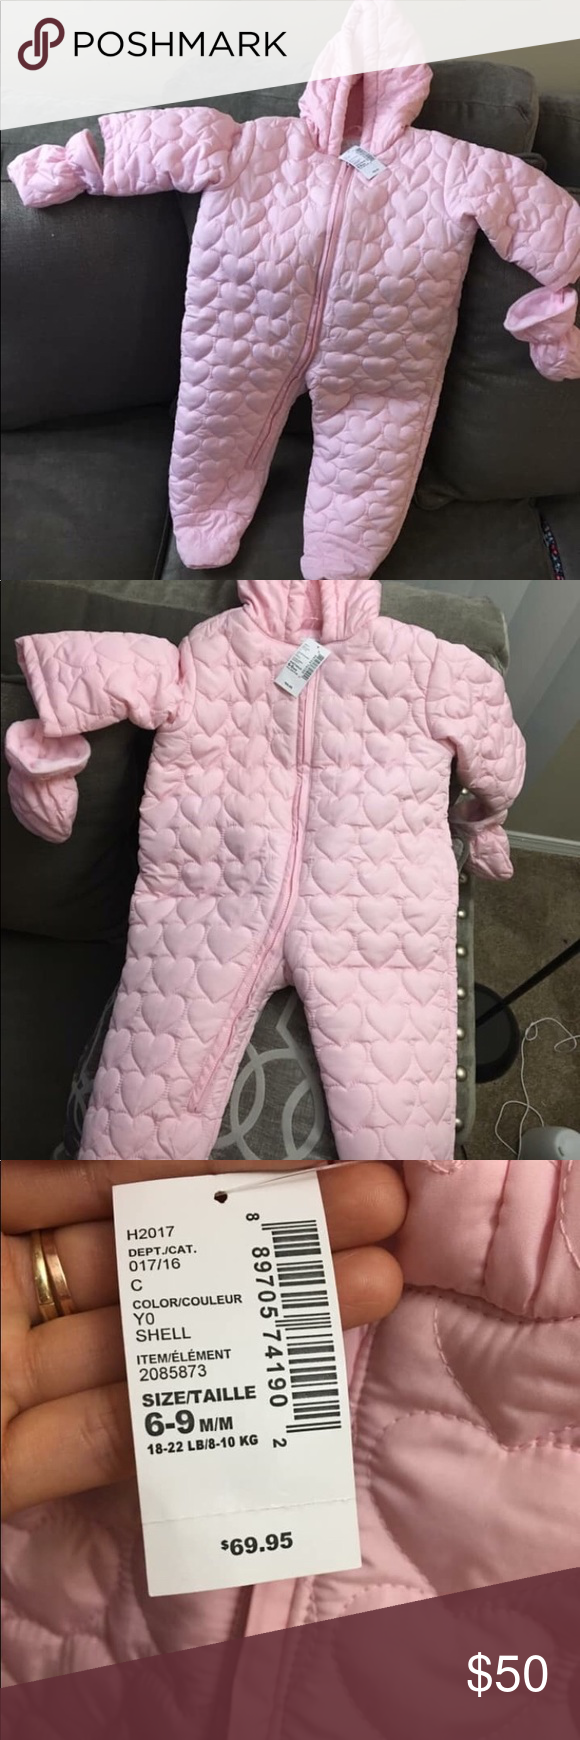 Taille Snowsuit Girls Grey Size 9 m